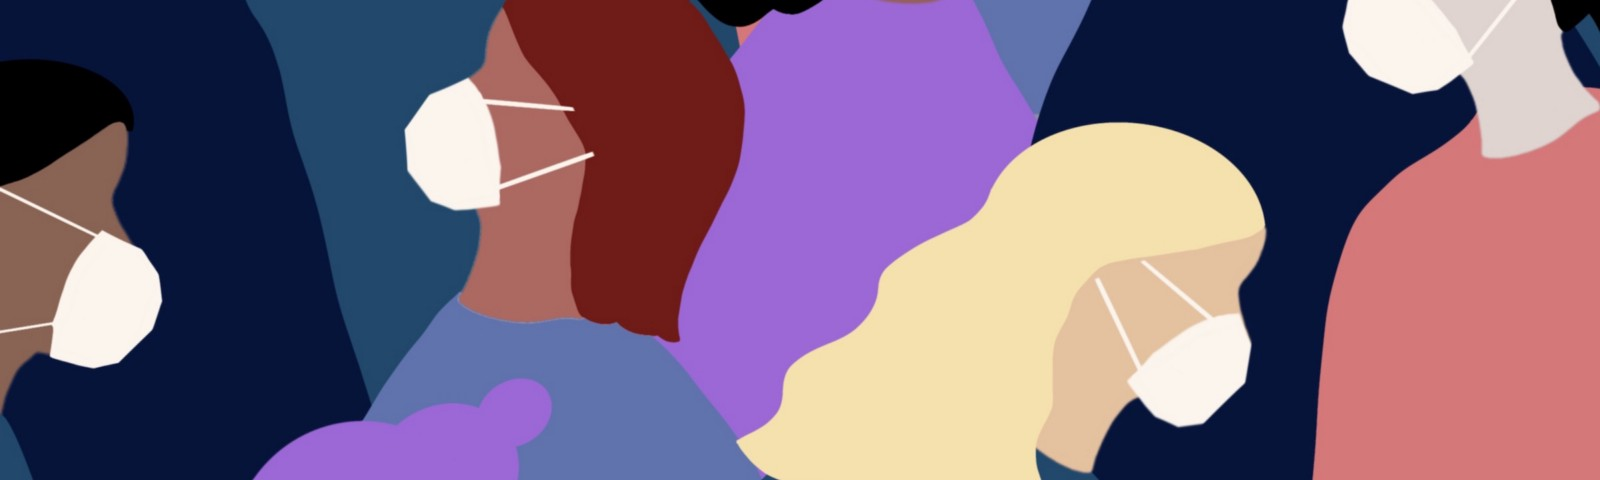 A crowd of overlapping people of different skin tones wearing N-95-style face masks. Illustration.